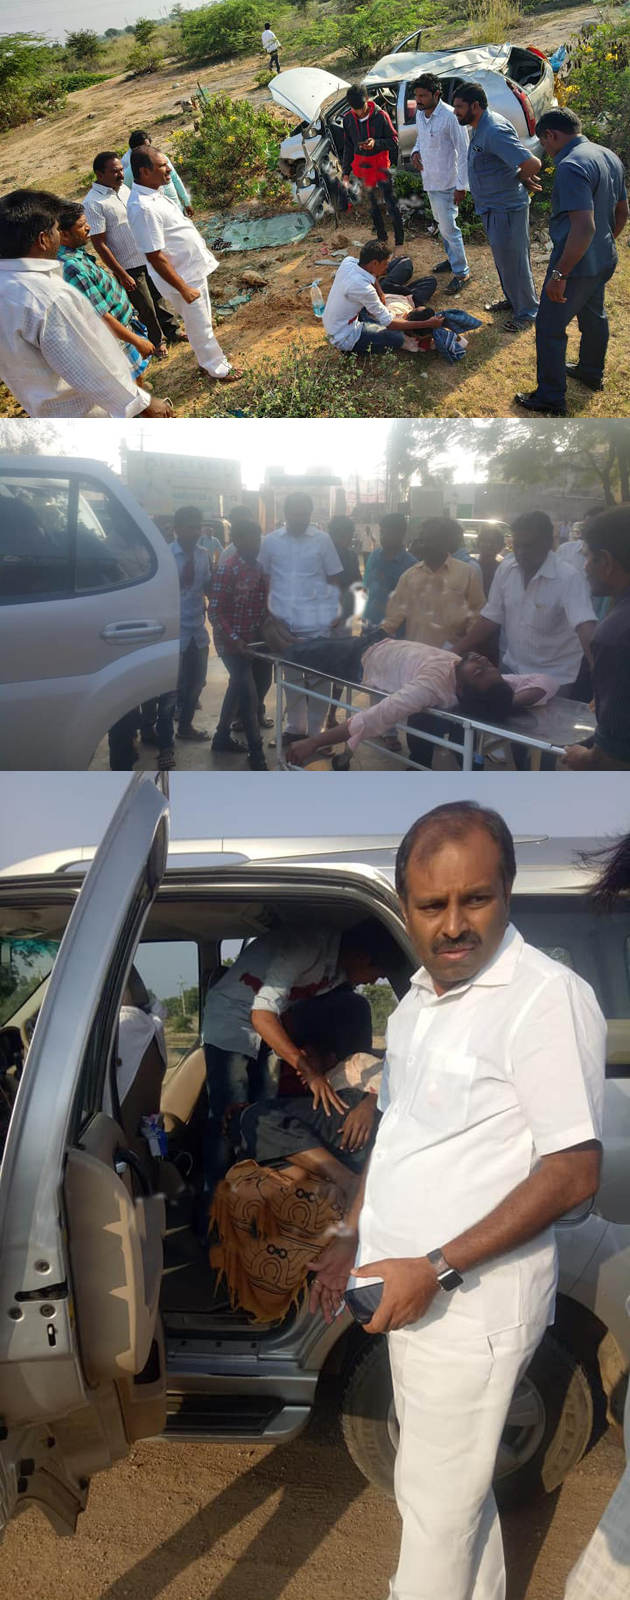 YSRCP MLA Srikanth Reddy Saves Injured Persons In Road Accident